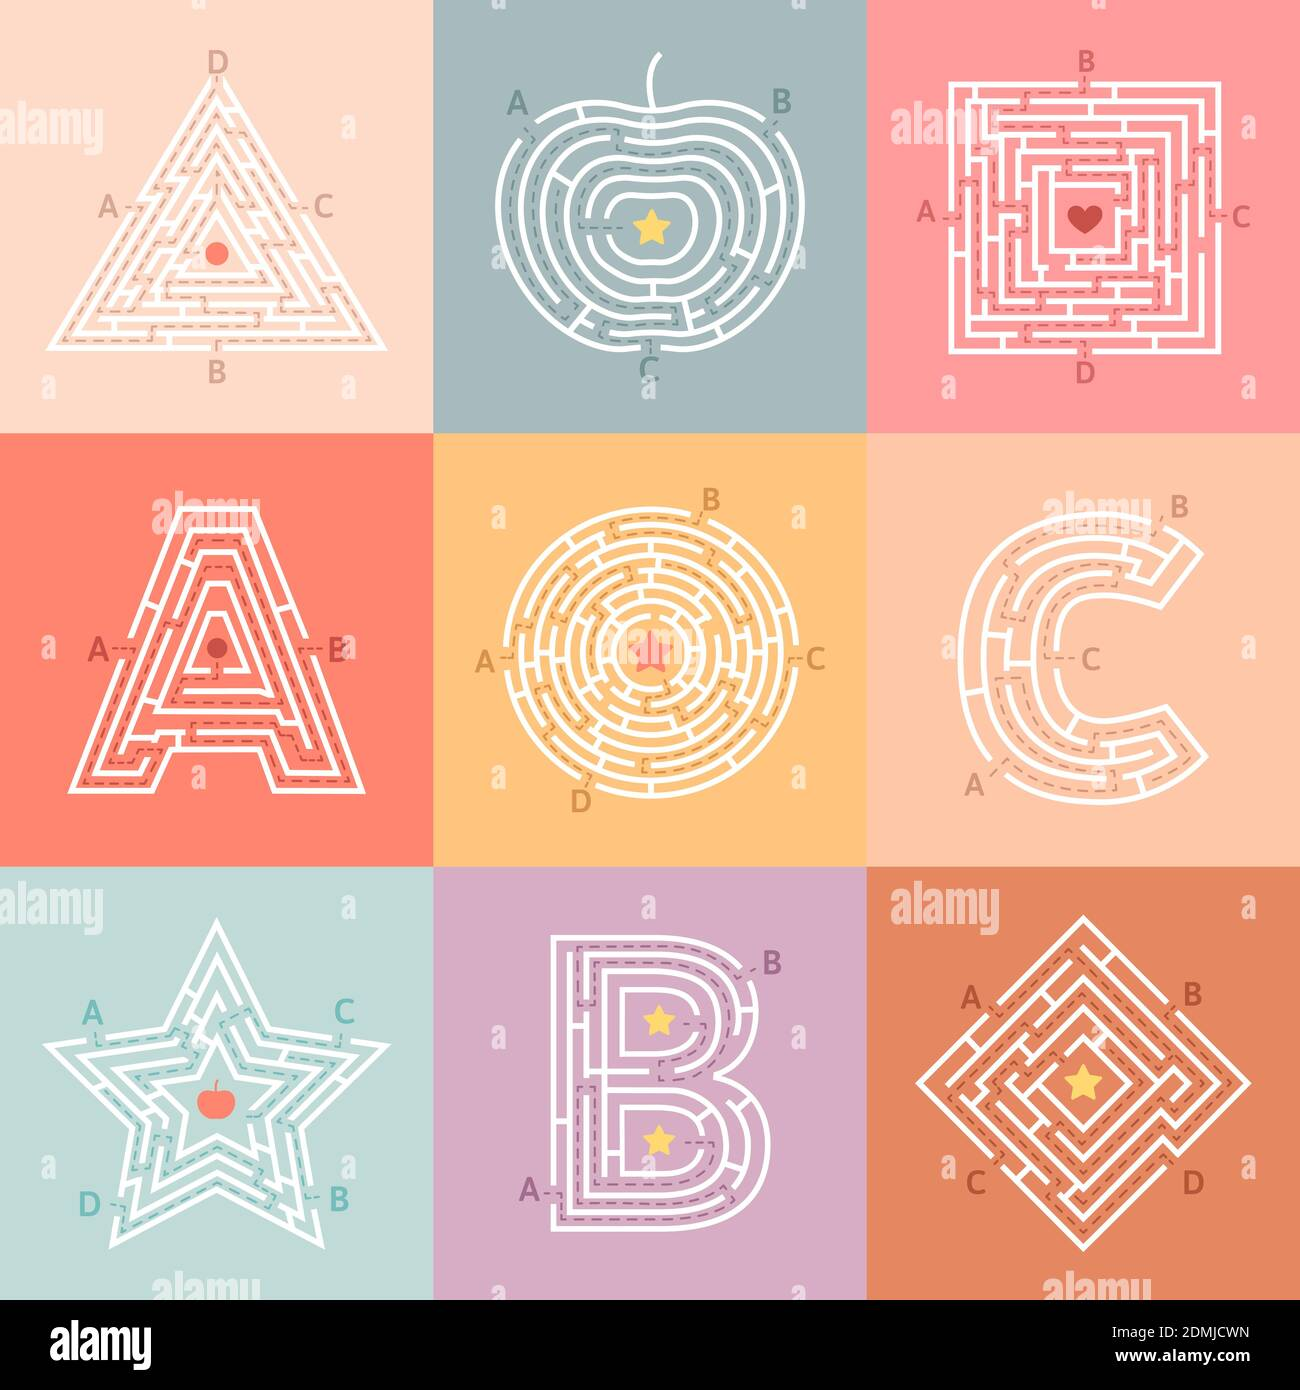 Page 3 Path Maze Activity Kids High Resolution Stock Photography And Images Alamy [ 1390 x 1300 Pixel ]